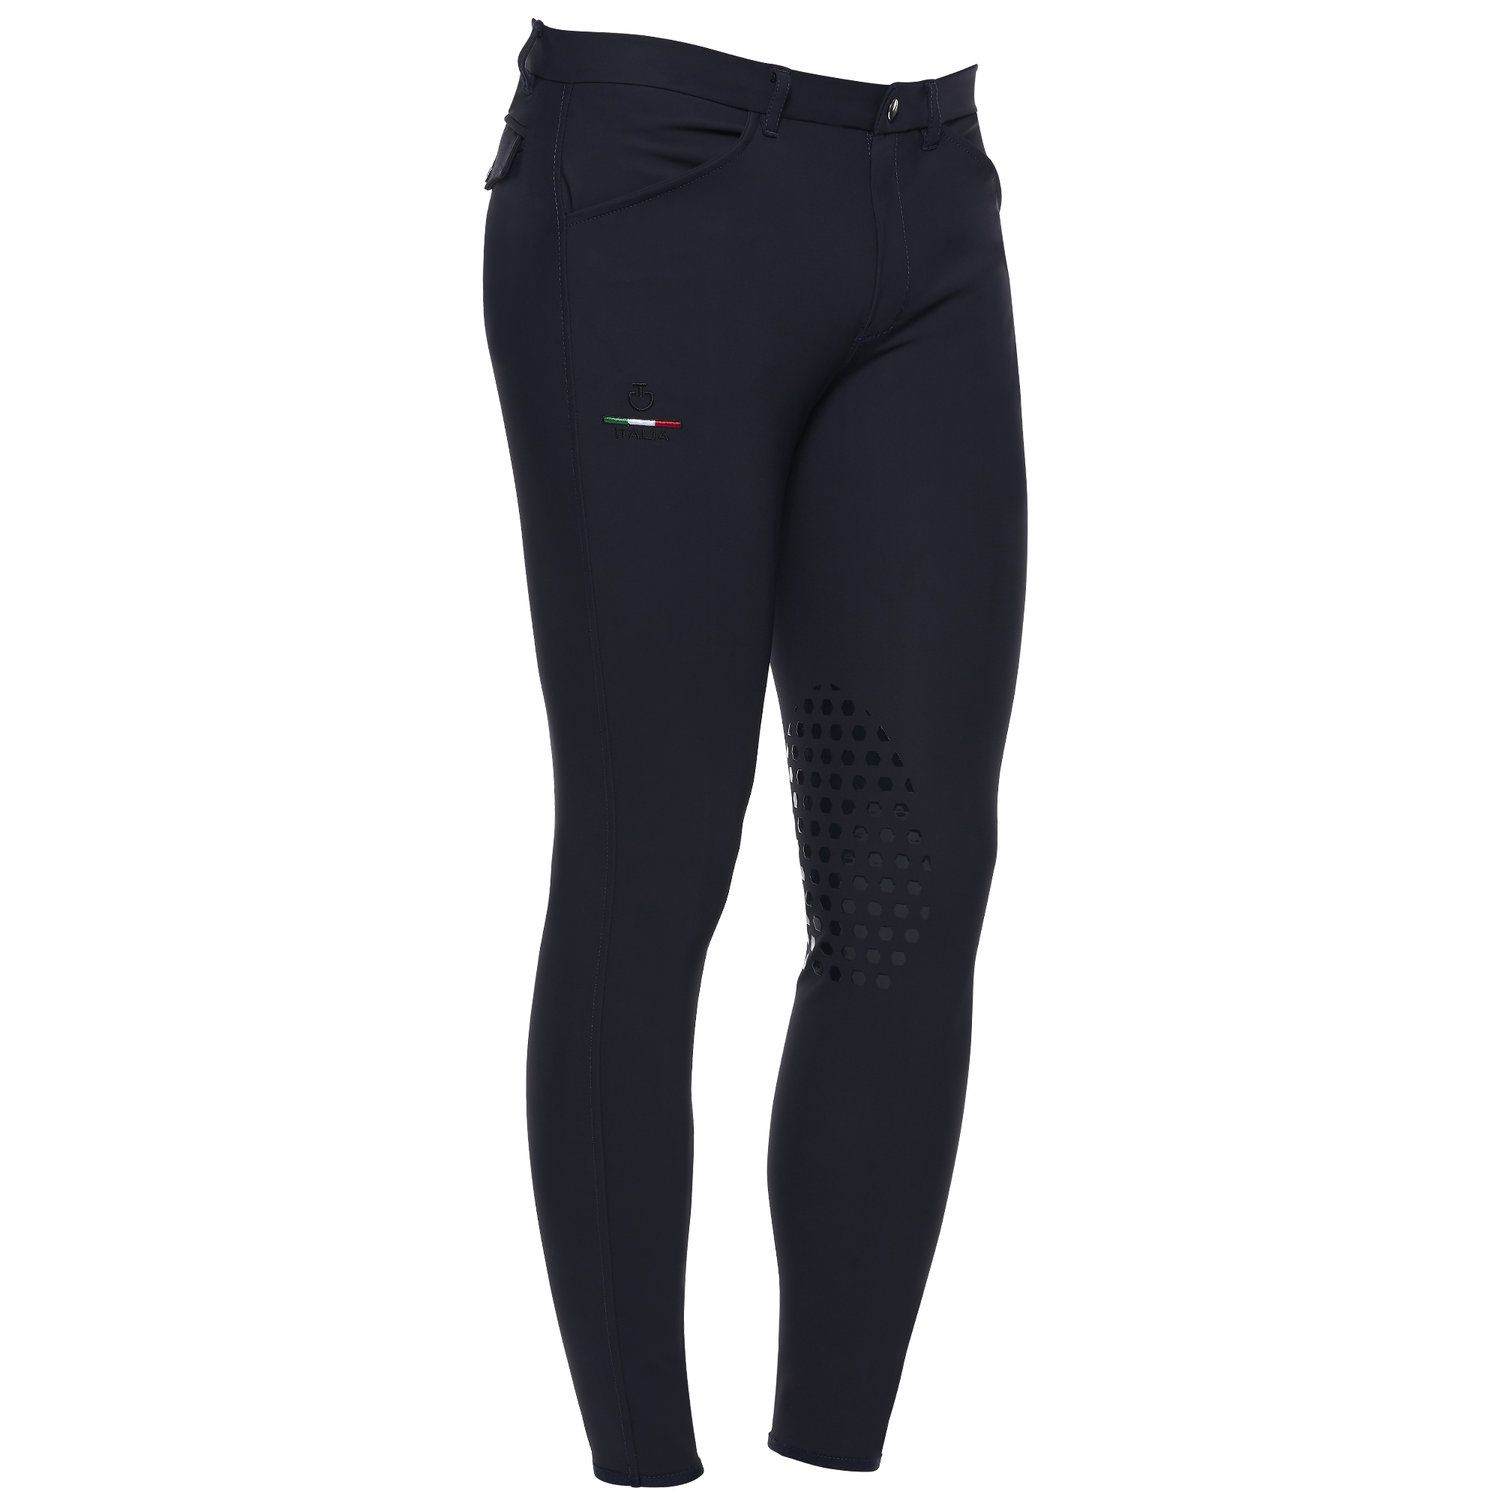 Men's FISE knee grip breeches